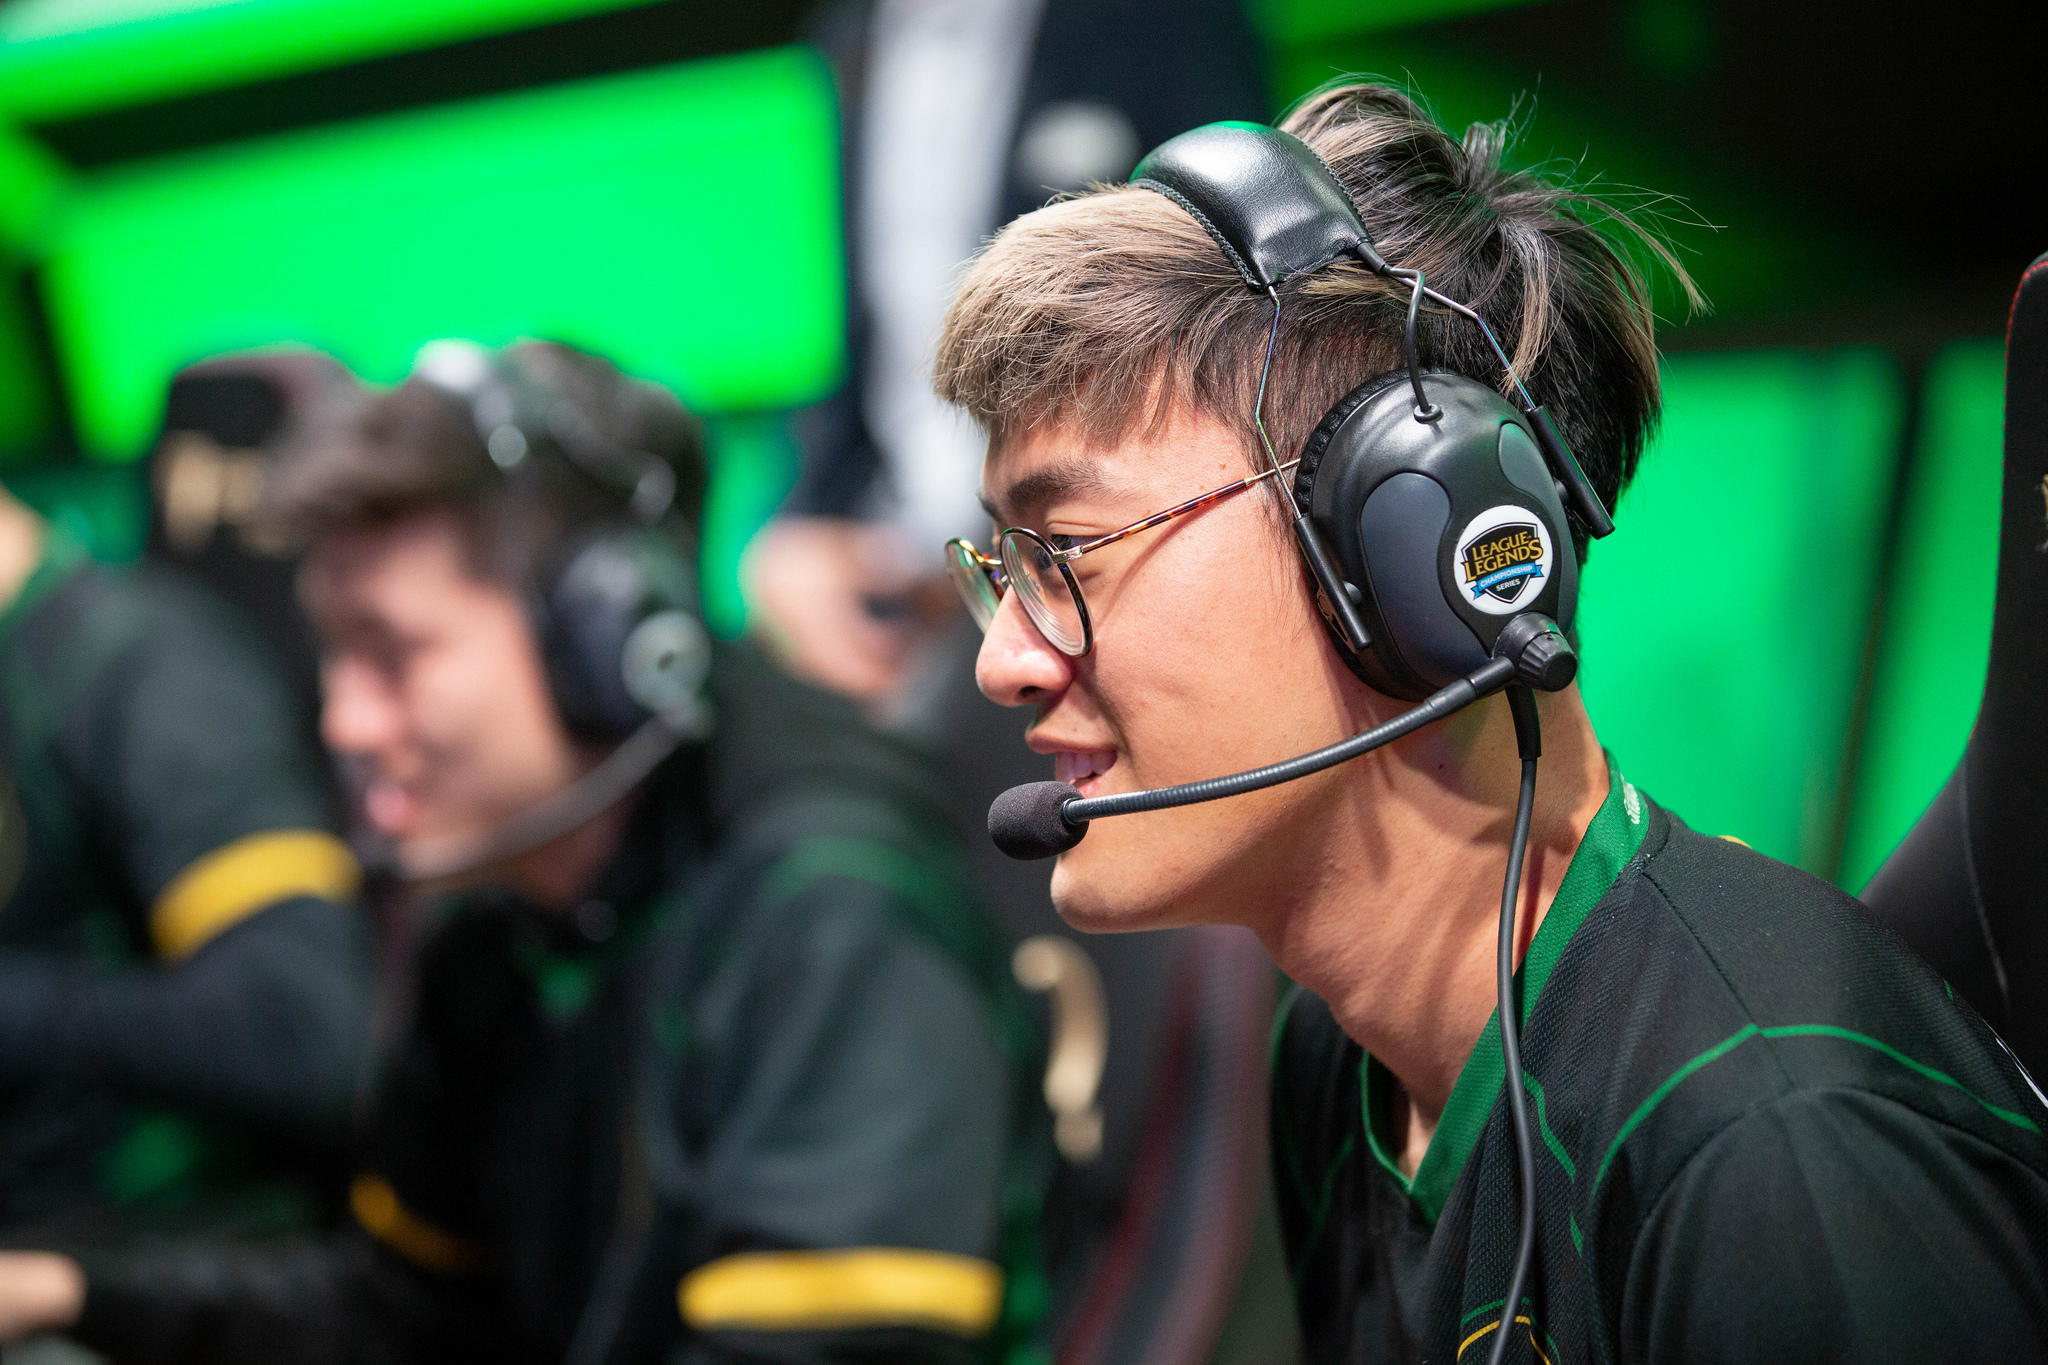 LCS Flyquest WildTurtle